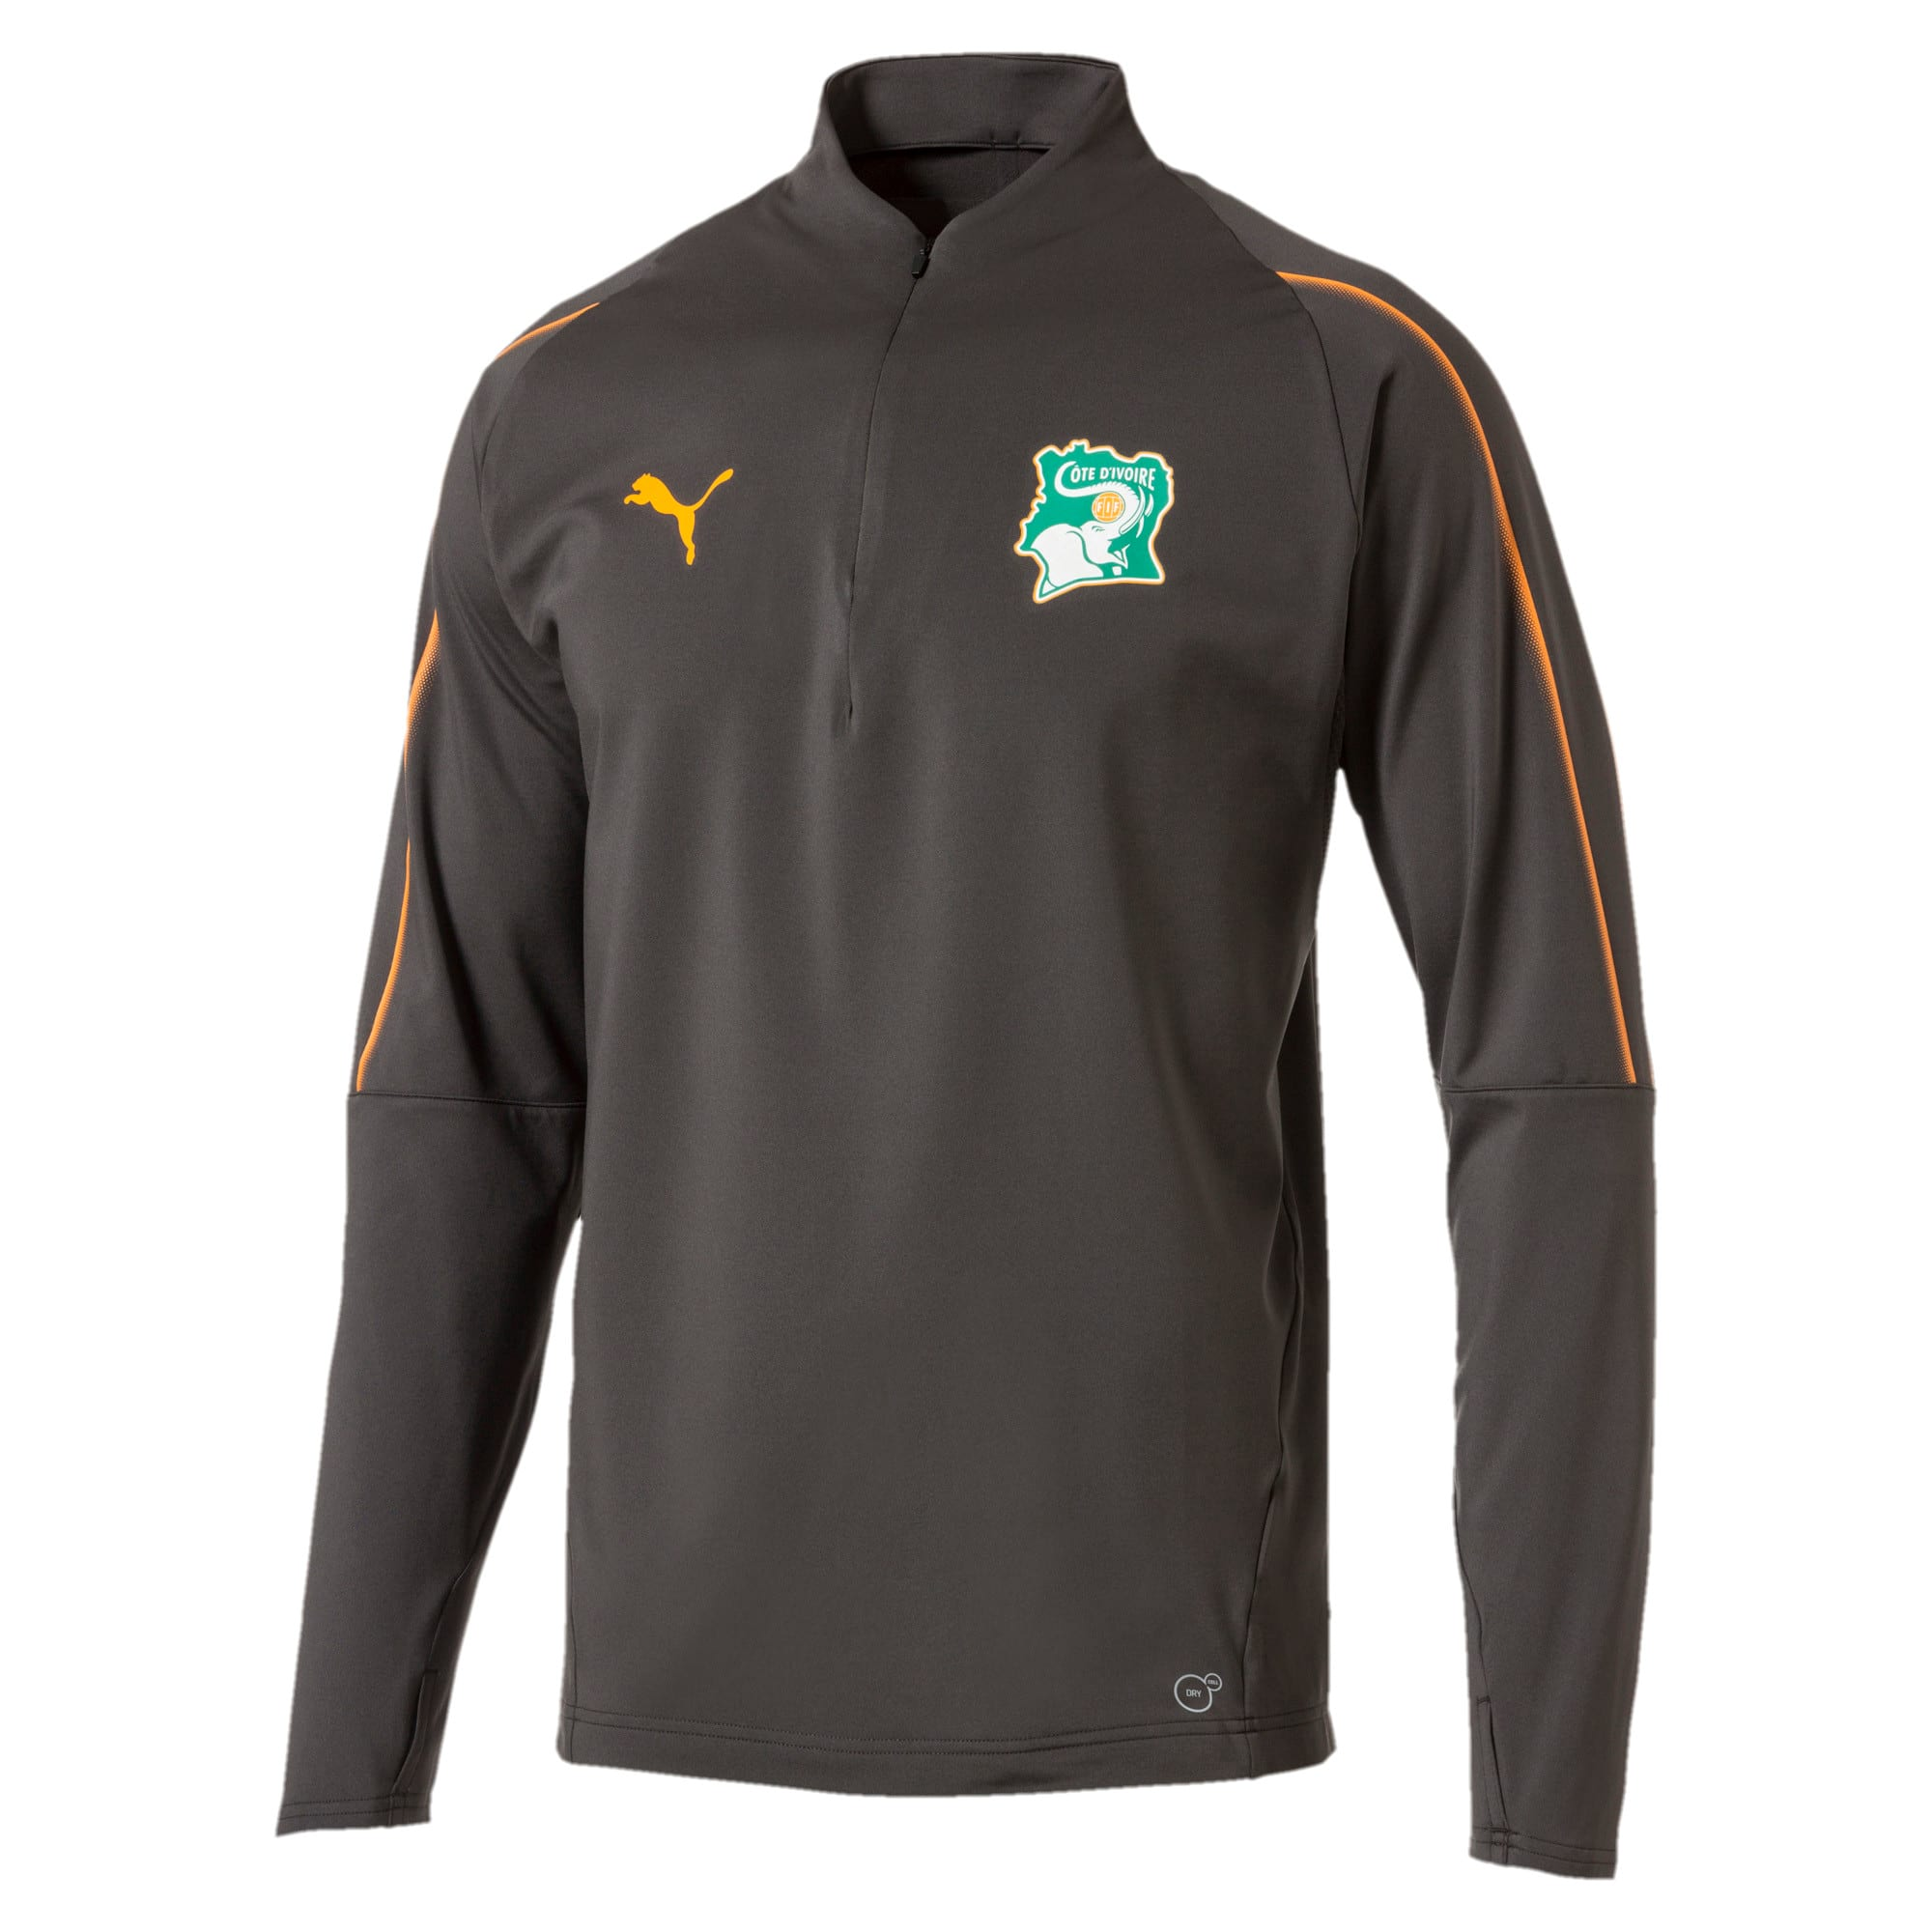 Thumbnail 1 of Ivory Coast 1/4 Zip Training Top, Asphalt, medium